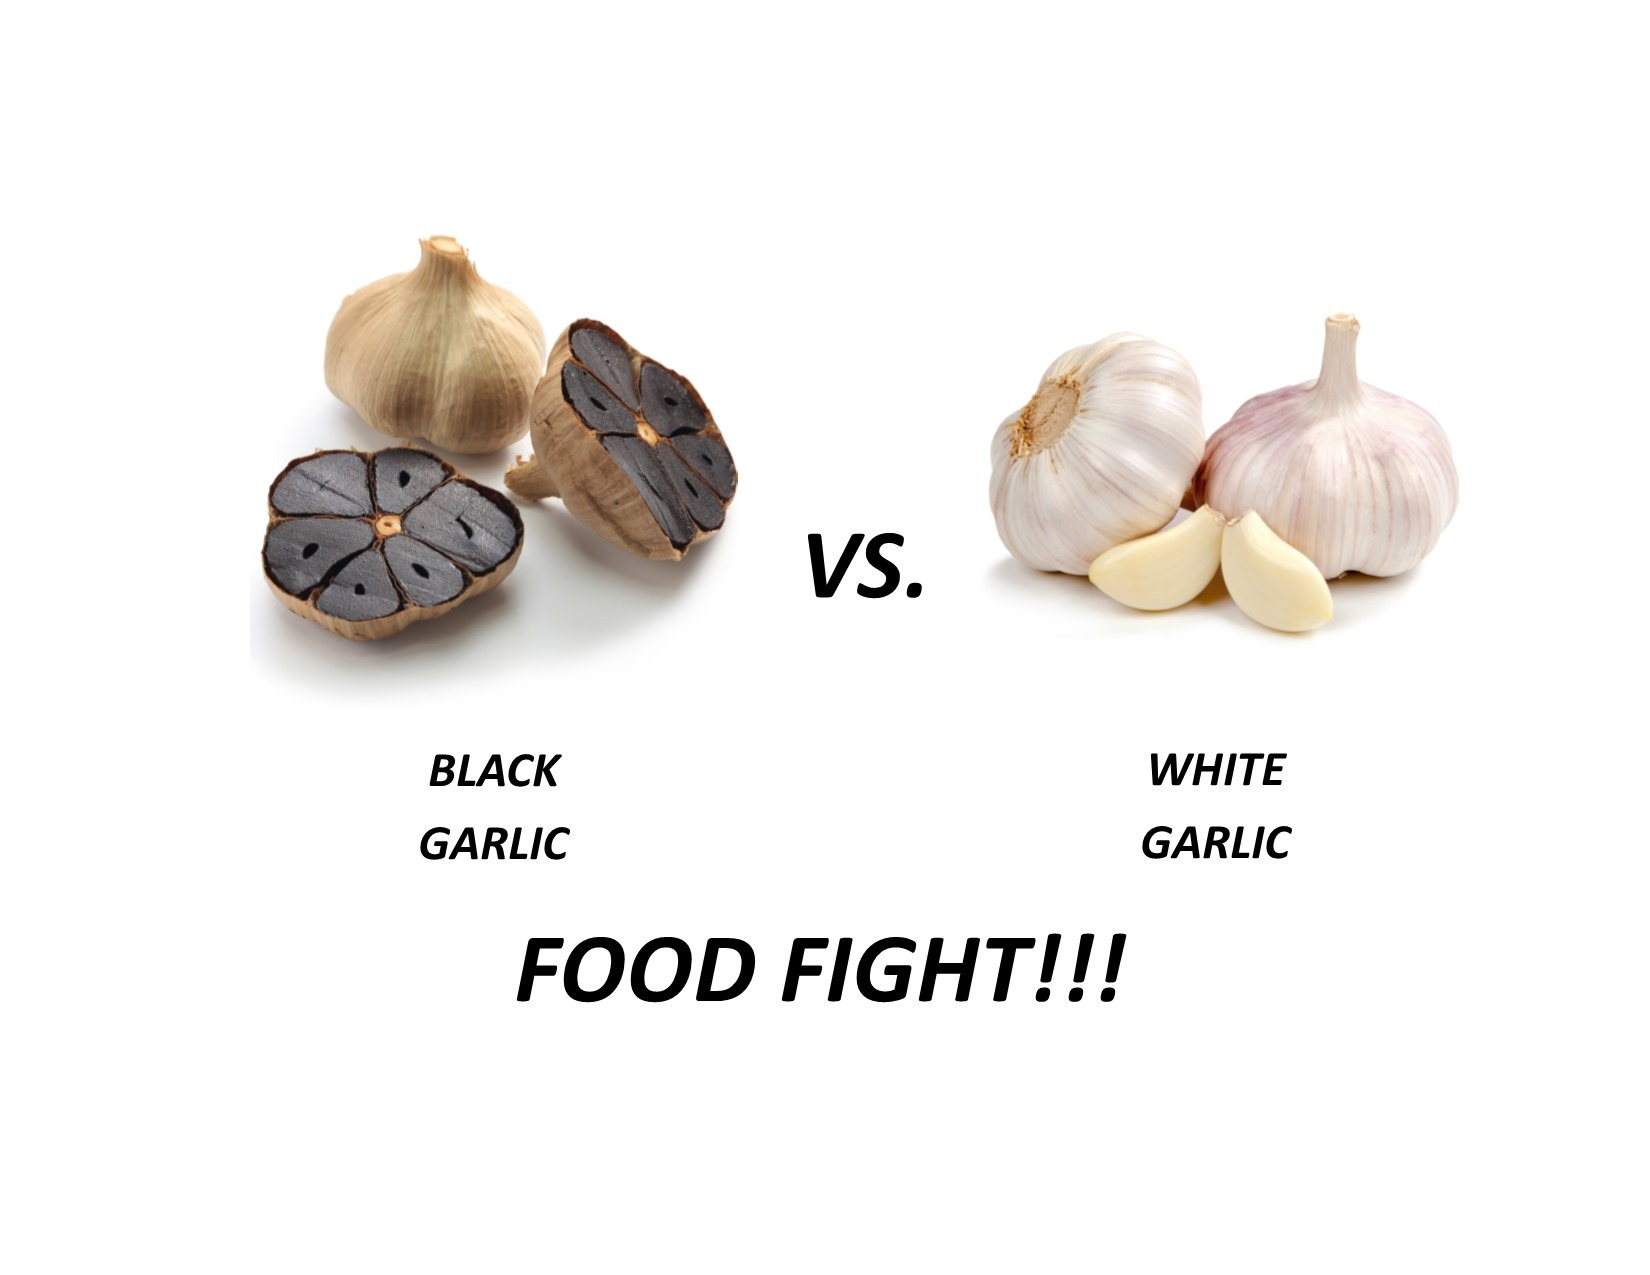 Black vs White Garlic